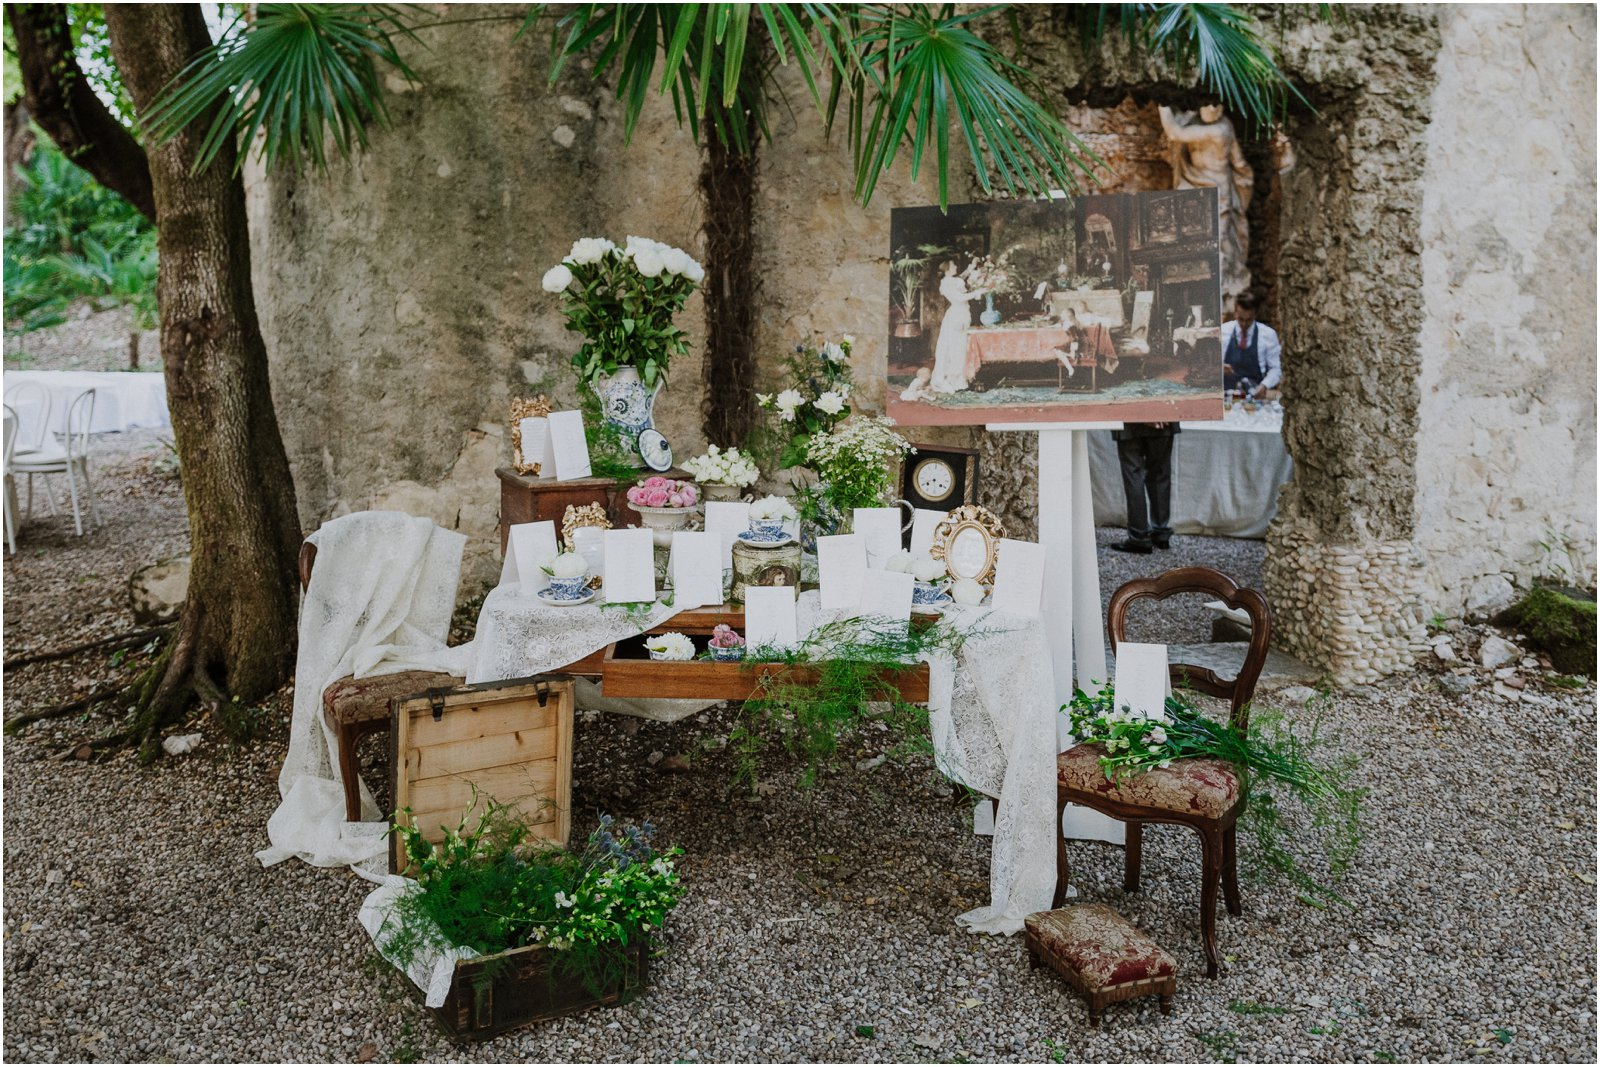 veronasposi foto e video matrimonio verona_0597